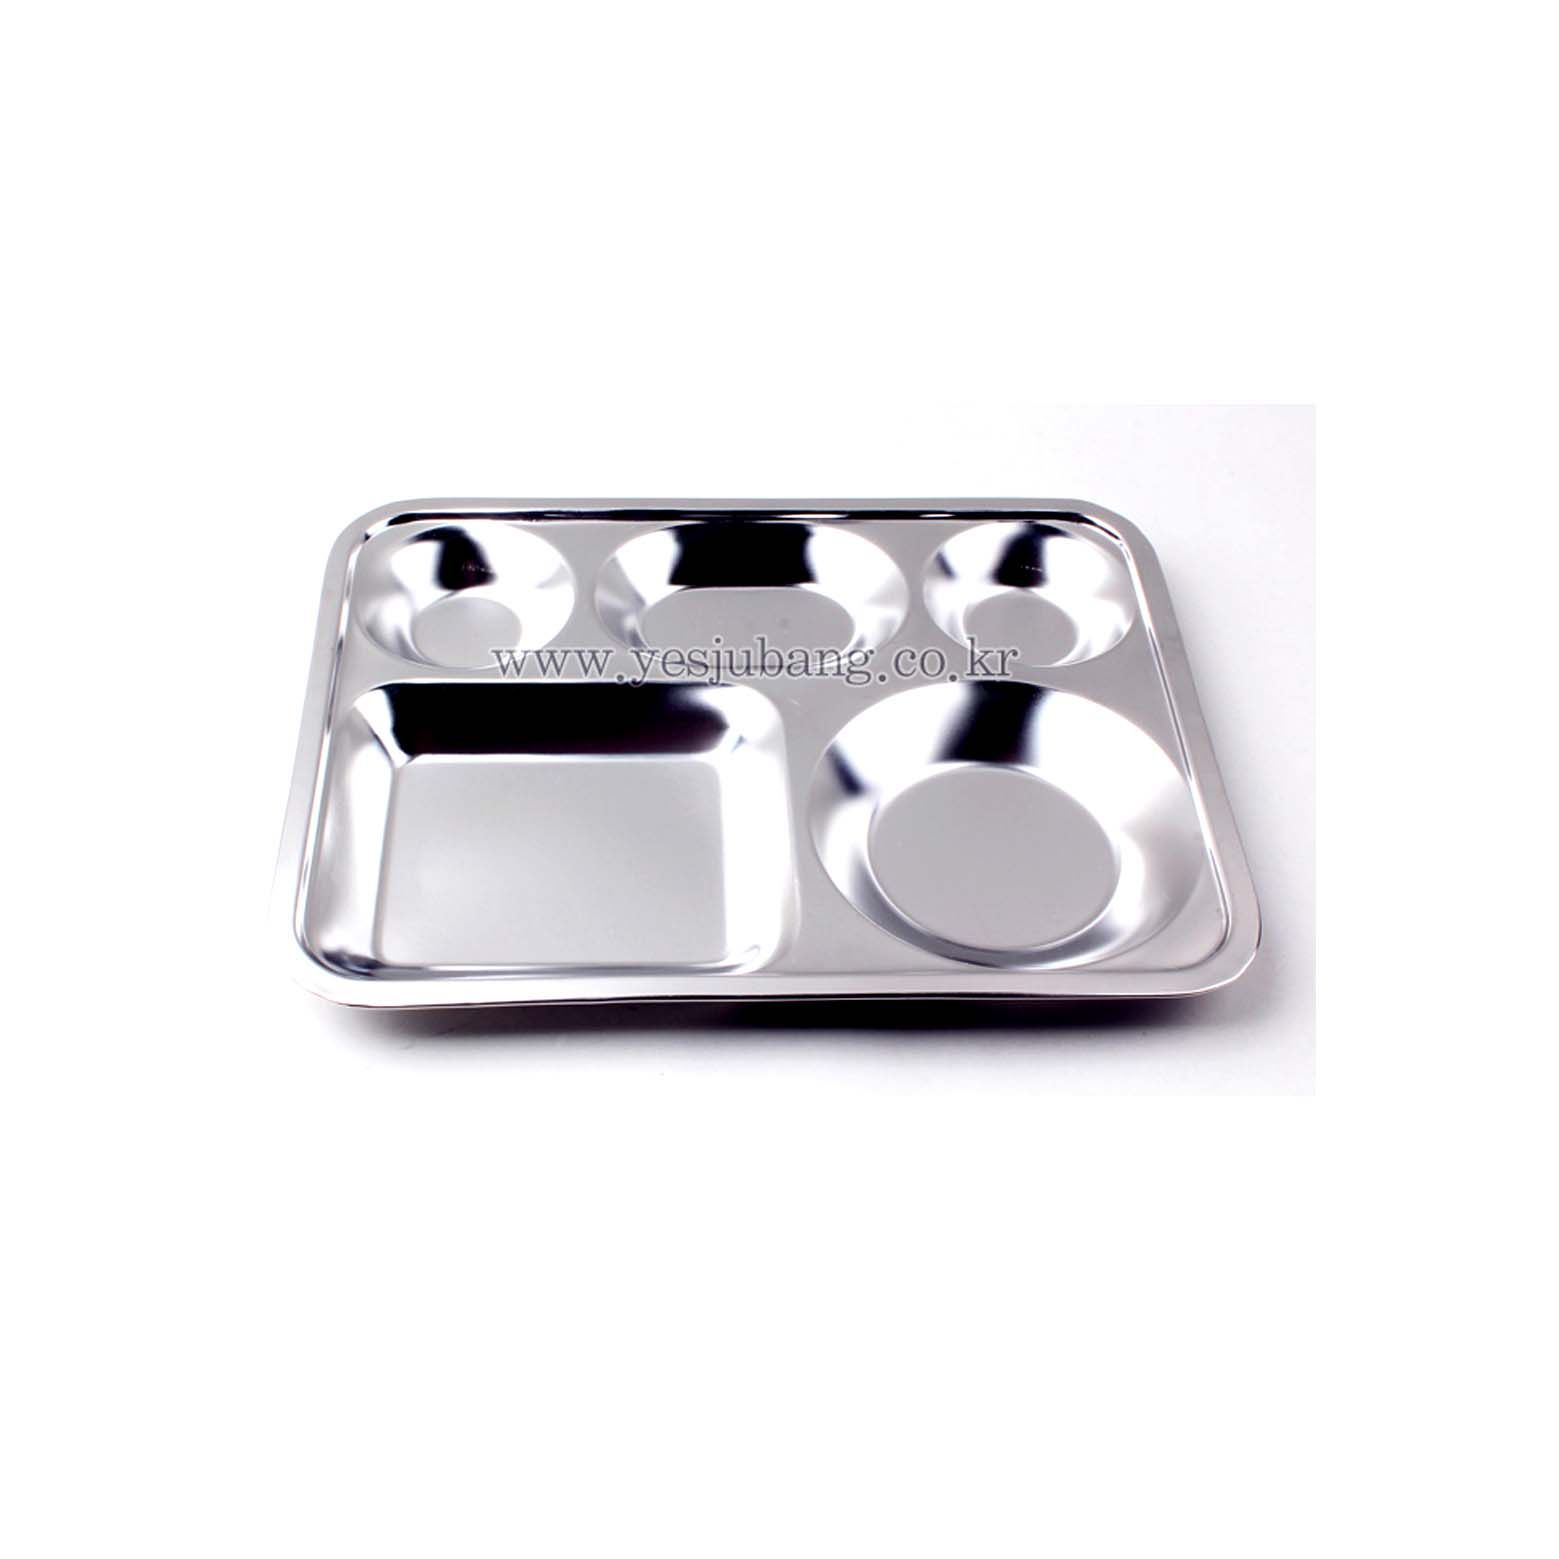 Large 5 Divided Stainless Steel Food Tray For Adult Diet